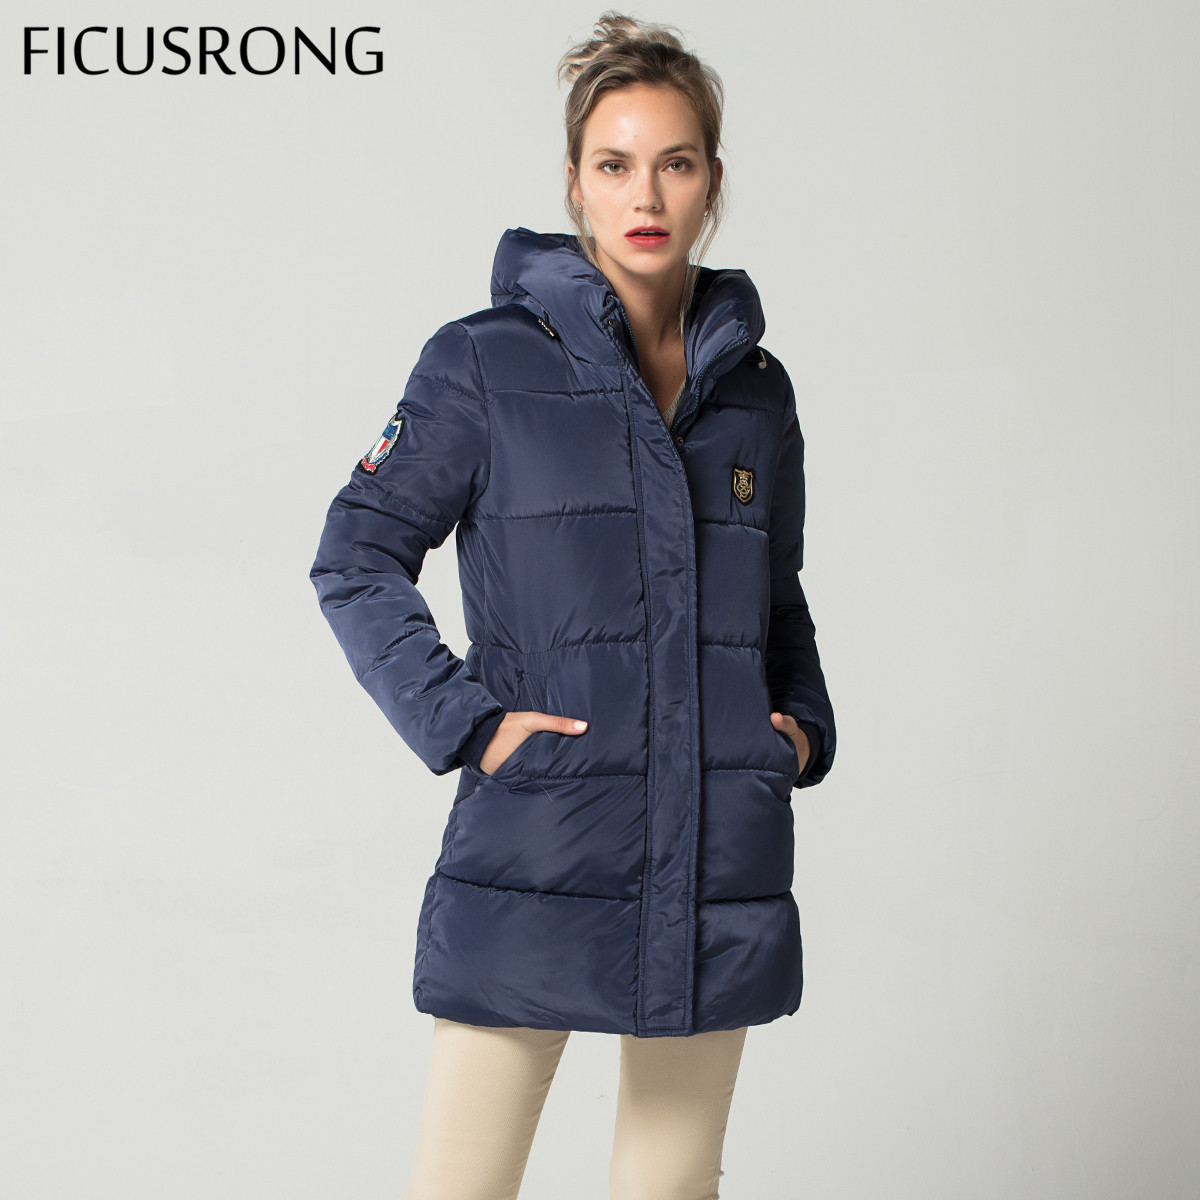 Long Down Parkas Female Women Winter Coat Thick Warm Cotton Hooded Jacket Womens Outerwear Parkas for